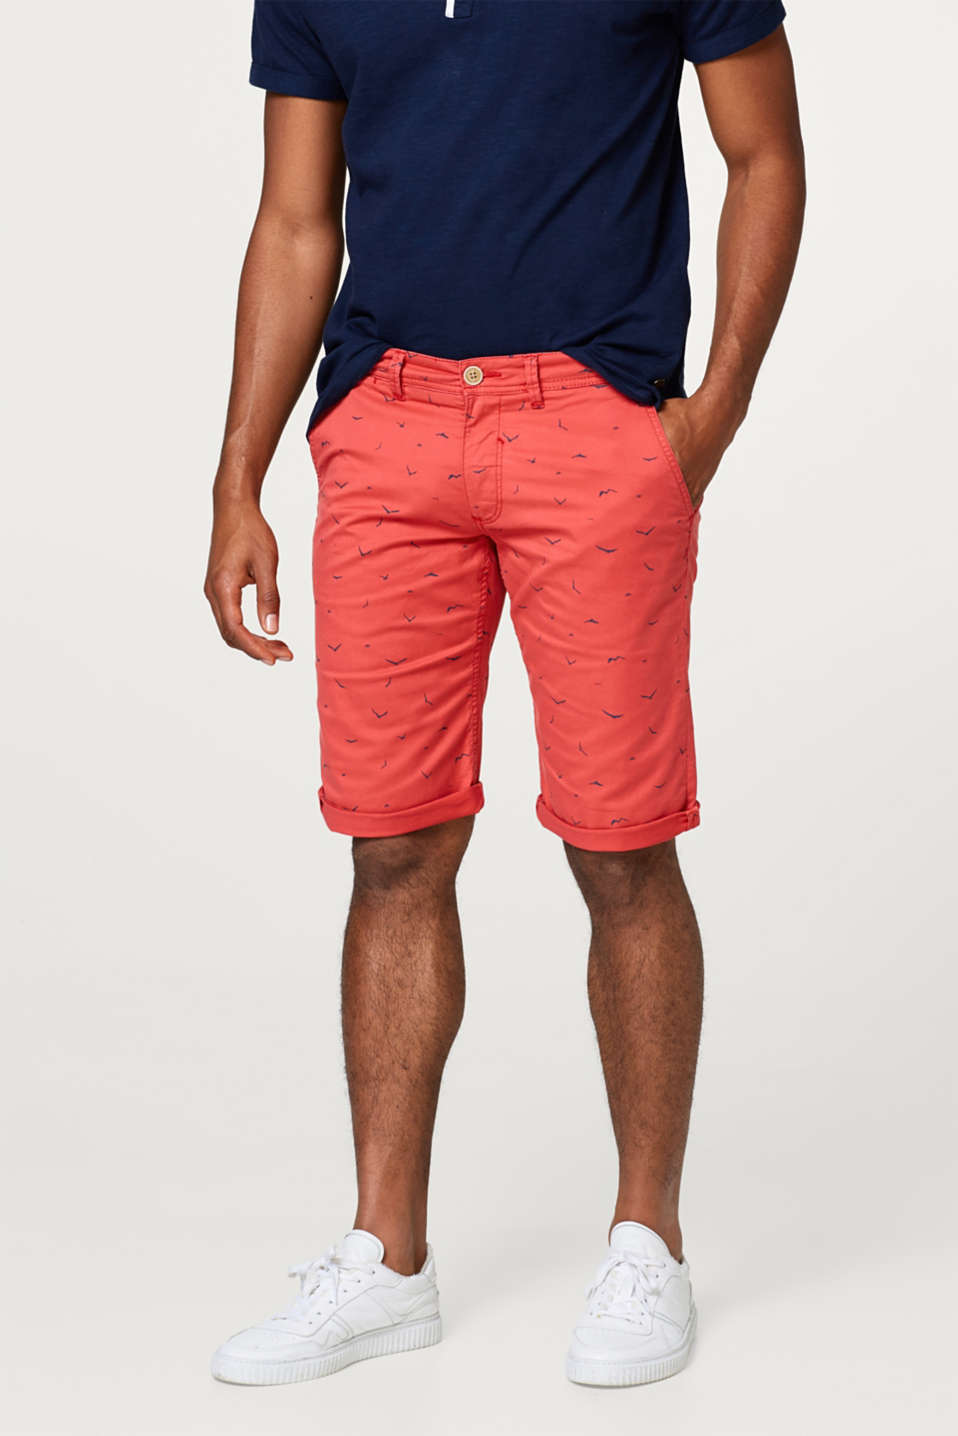 Esprit - Twill short with a seagull print and stretch